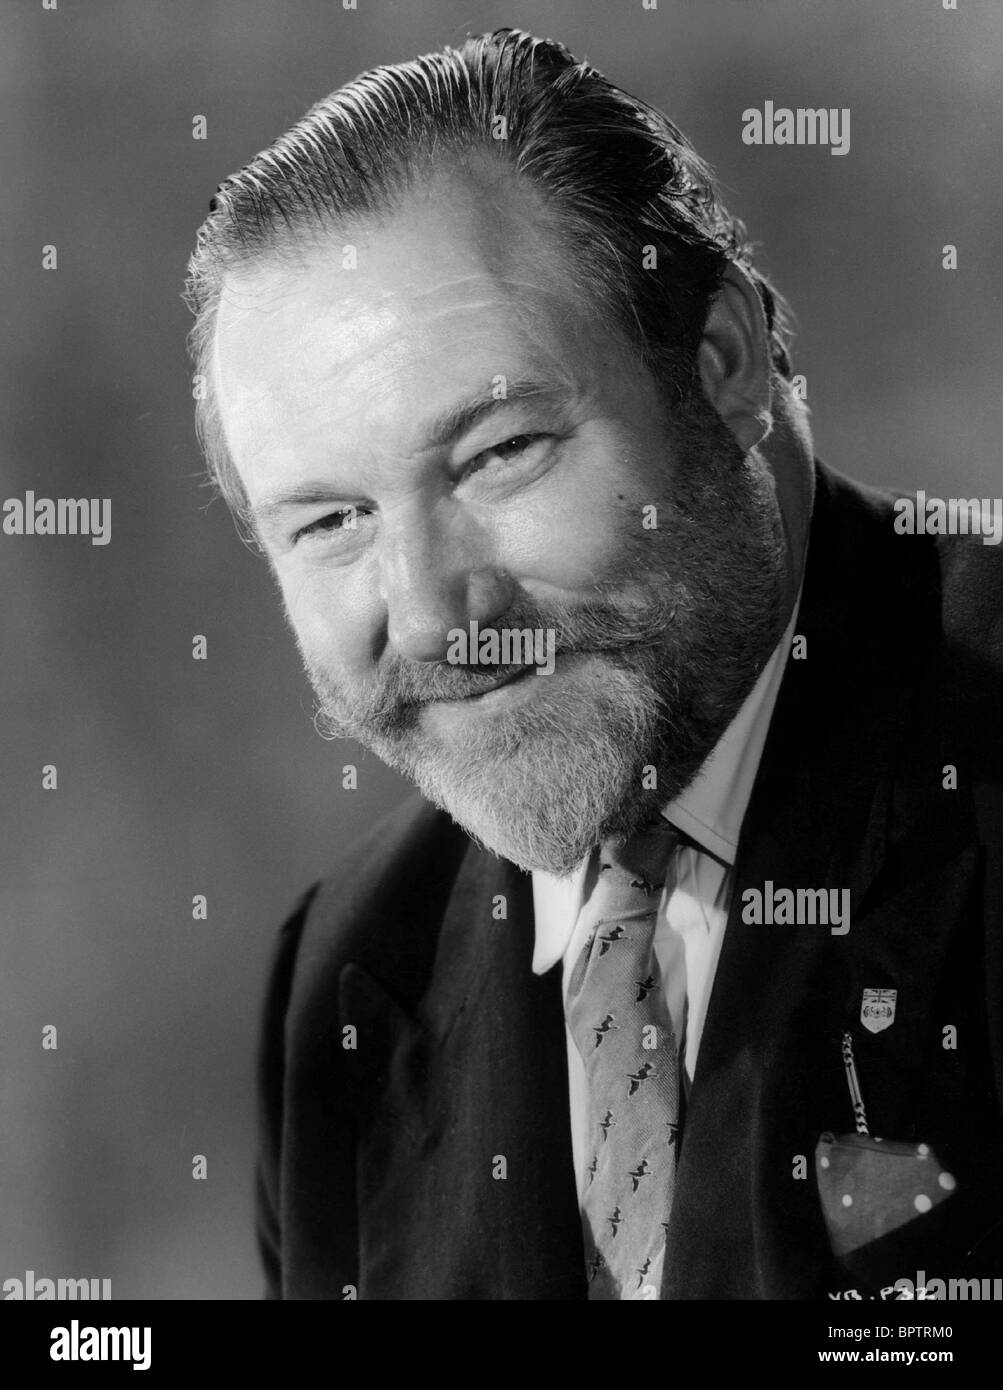 JAMES ROBERTSON JUSTICE ACTOR (1962) - Stock Image